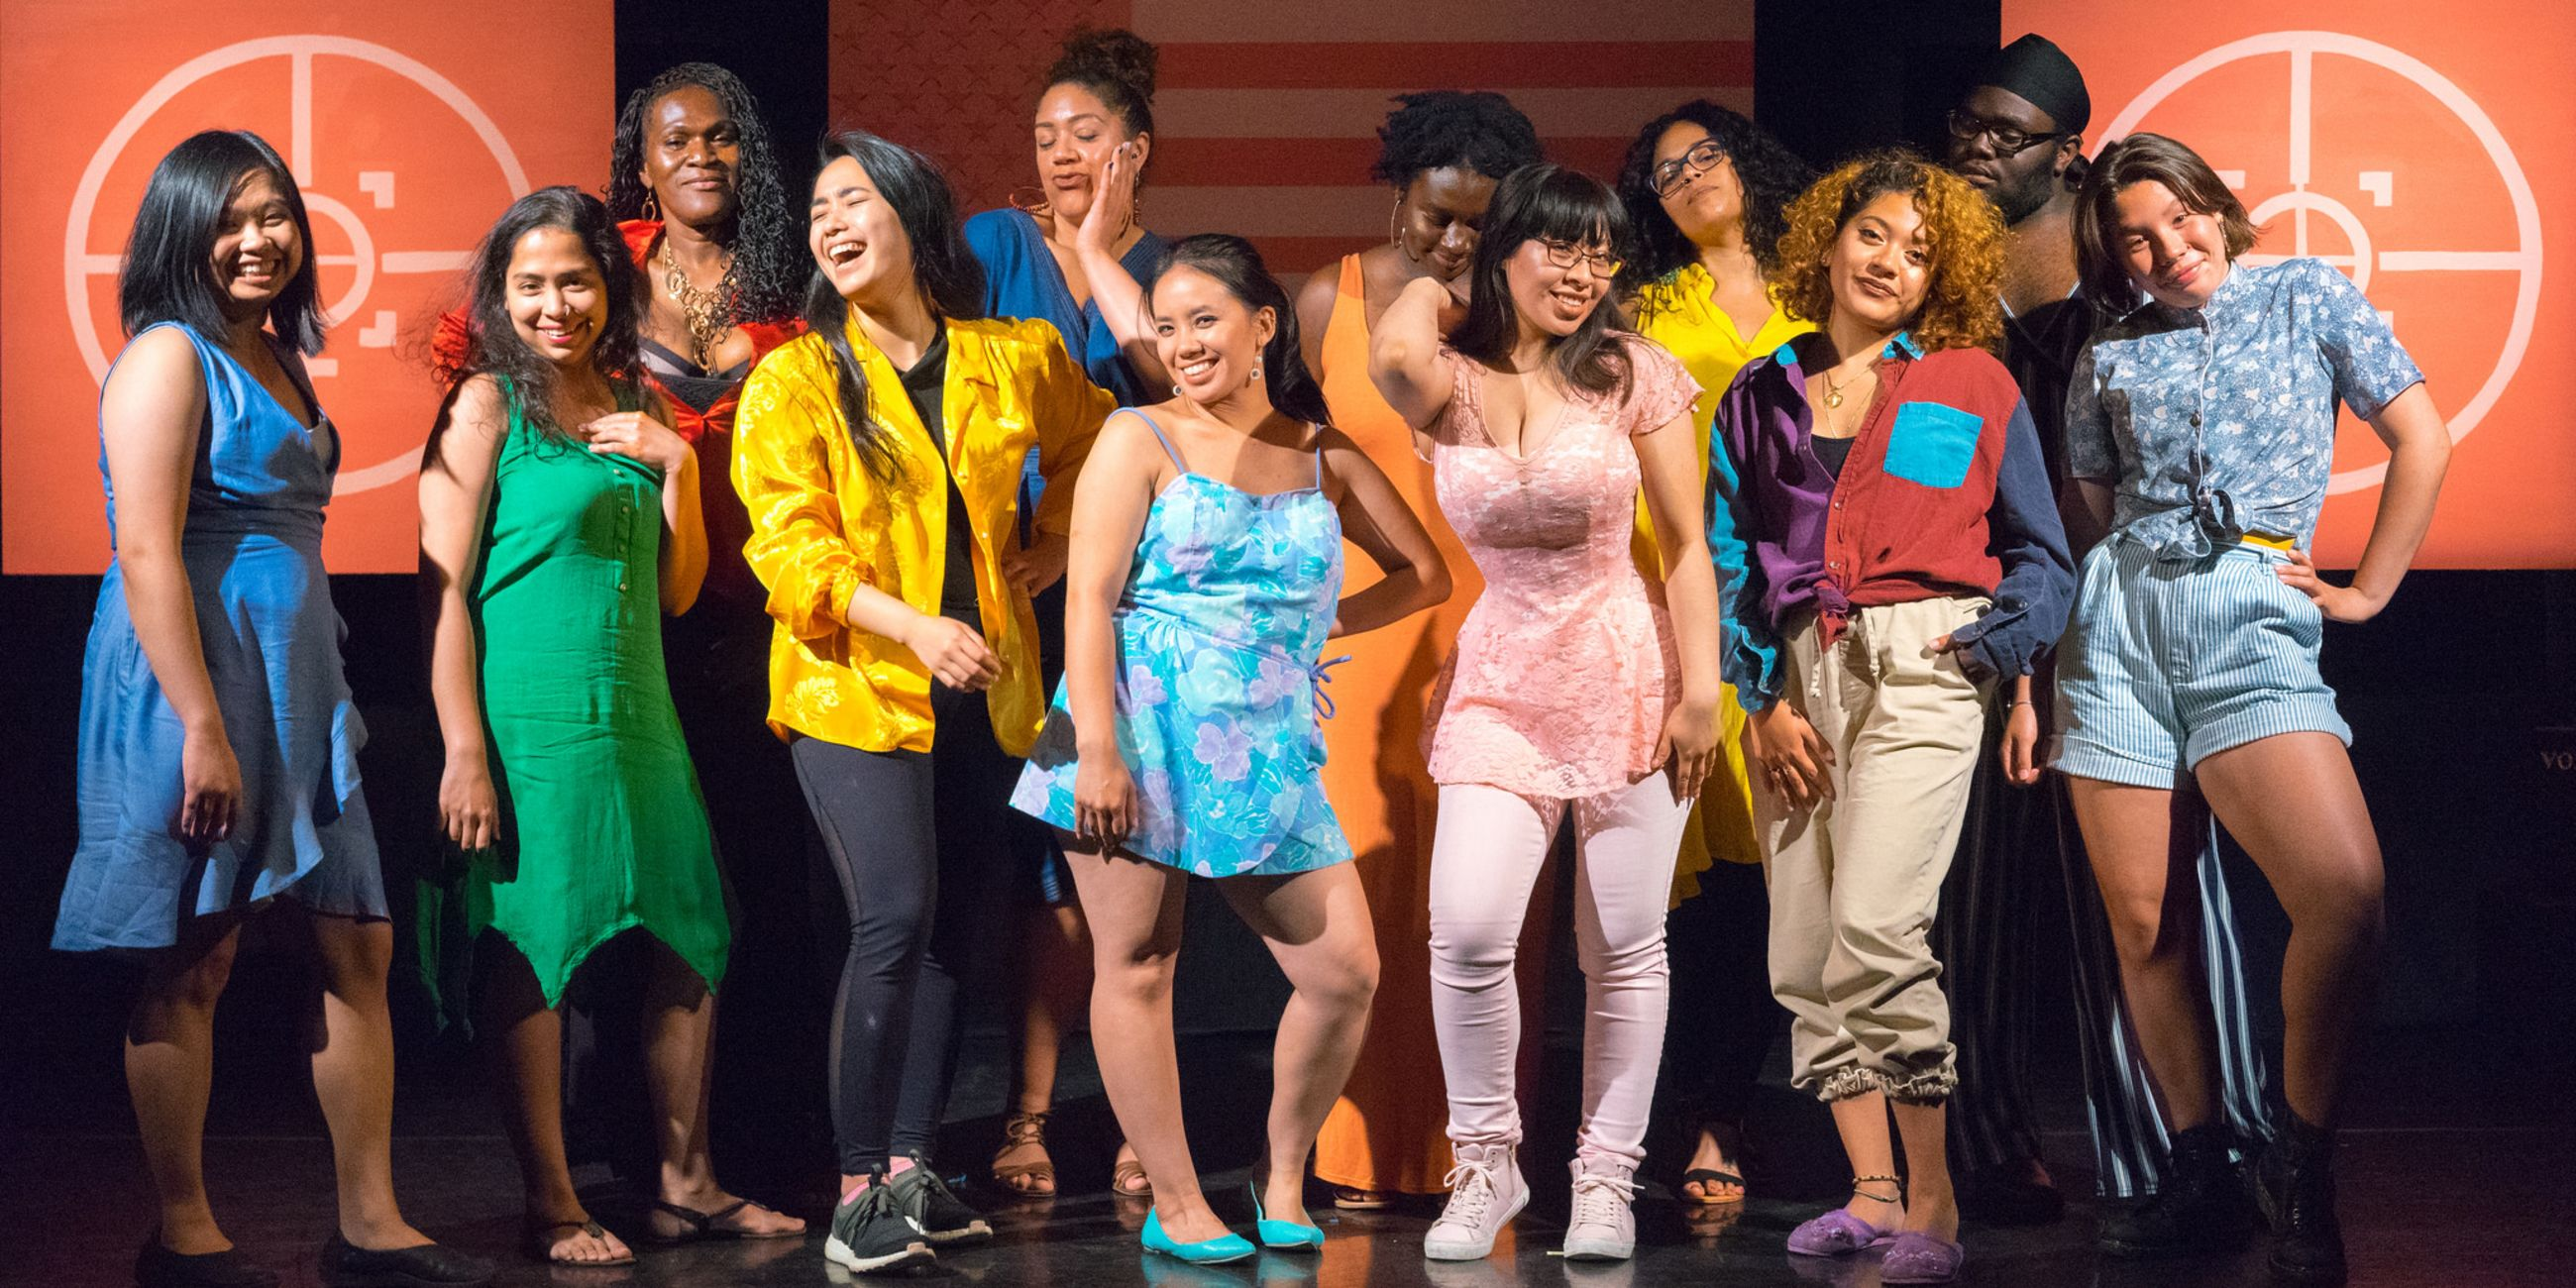 Learn About Diversity and Inclusion Through Theatrical Performance